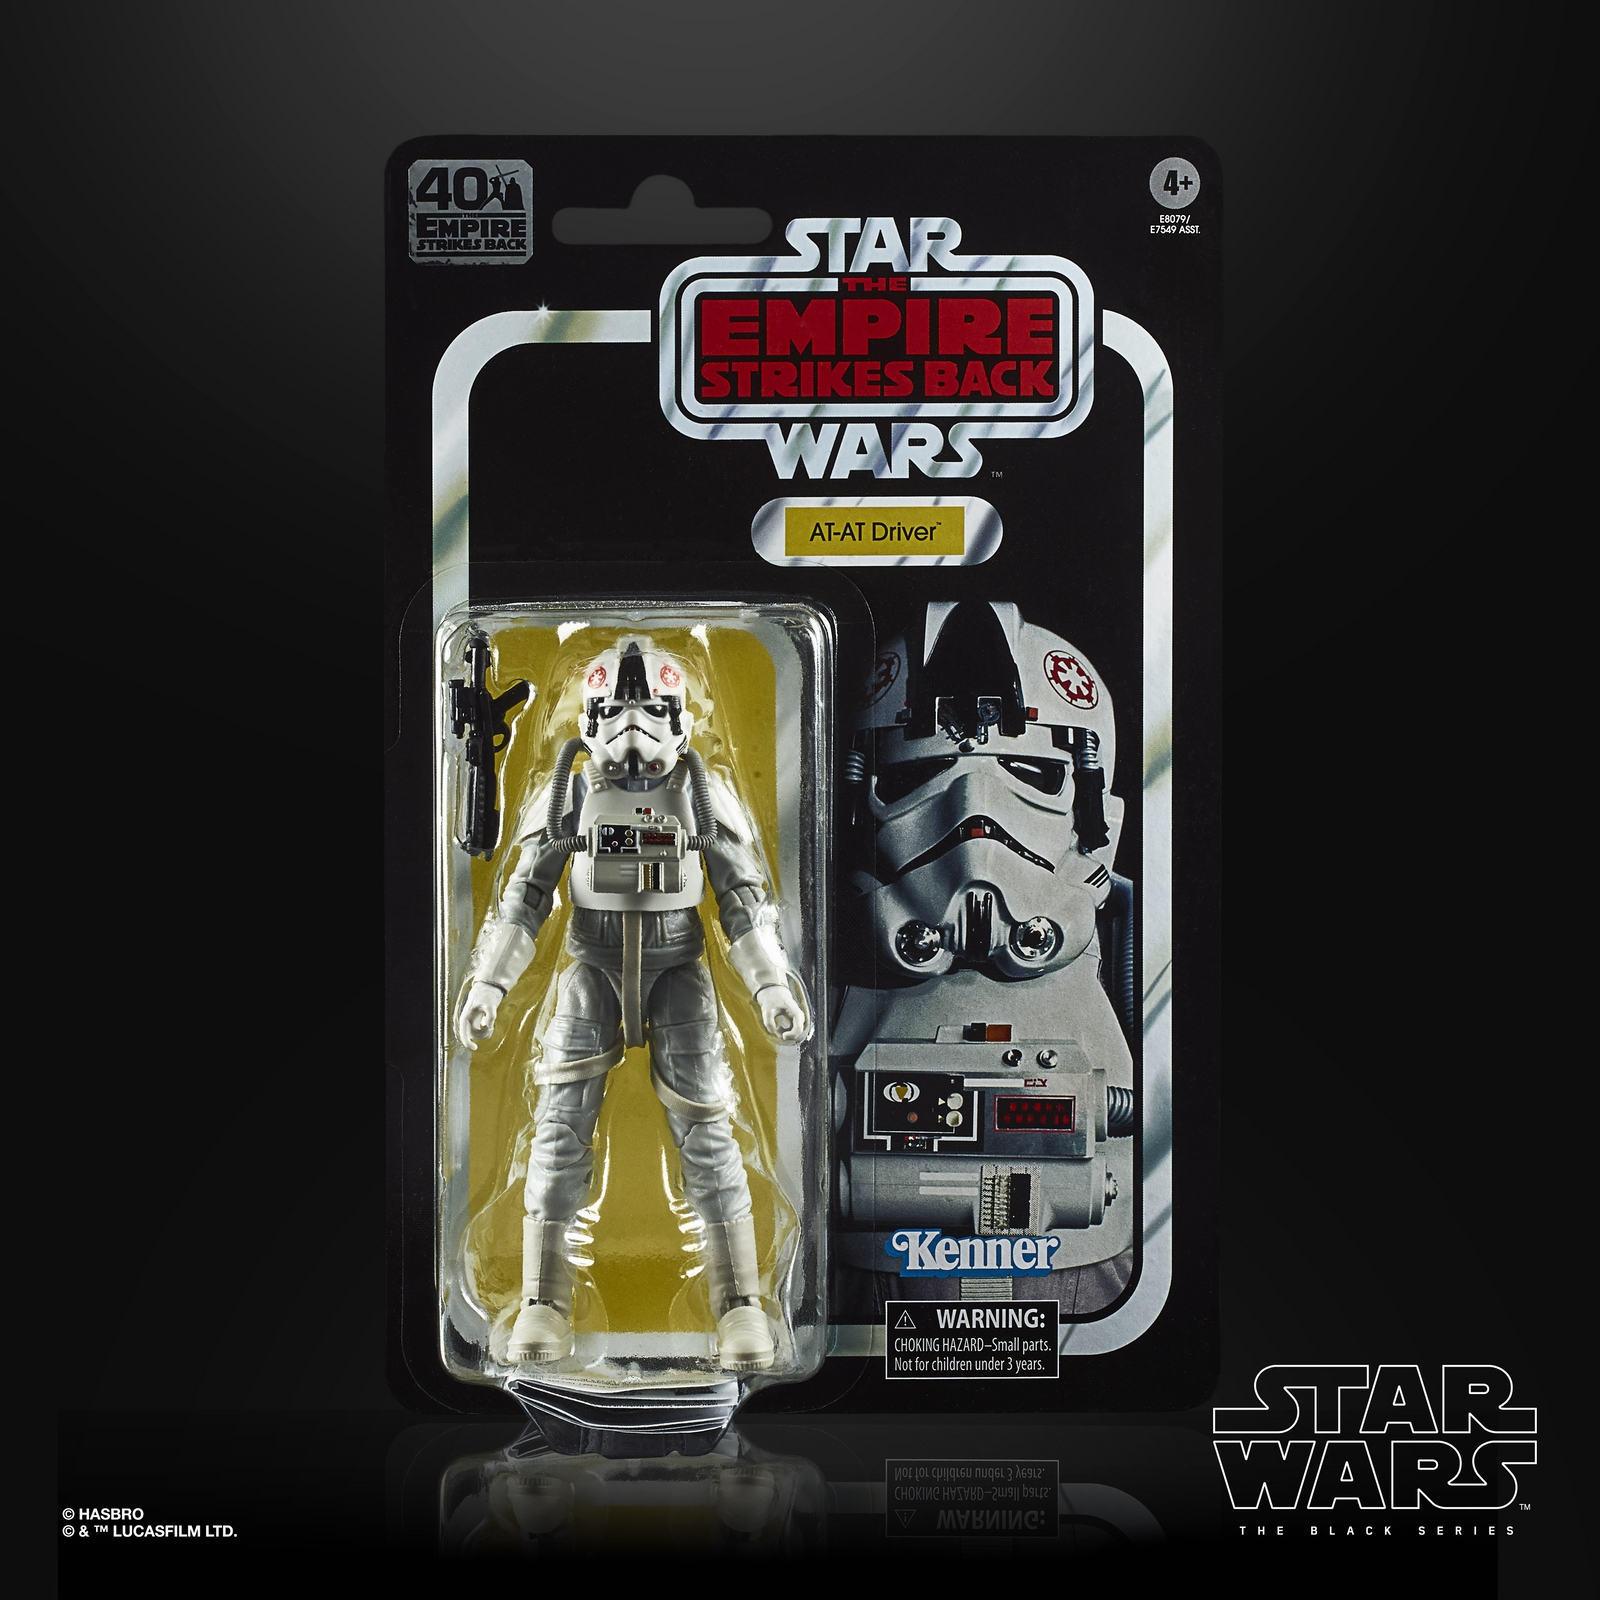 star-wars-the-black-series-40th-anniversary-6-inch-at-at-driver---in-pck.jpg